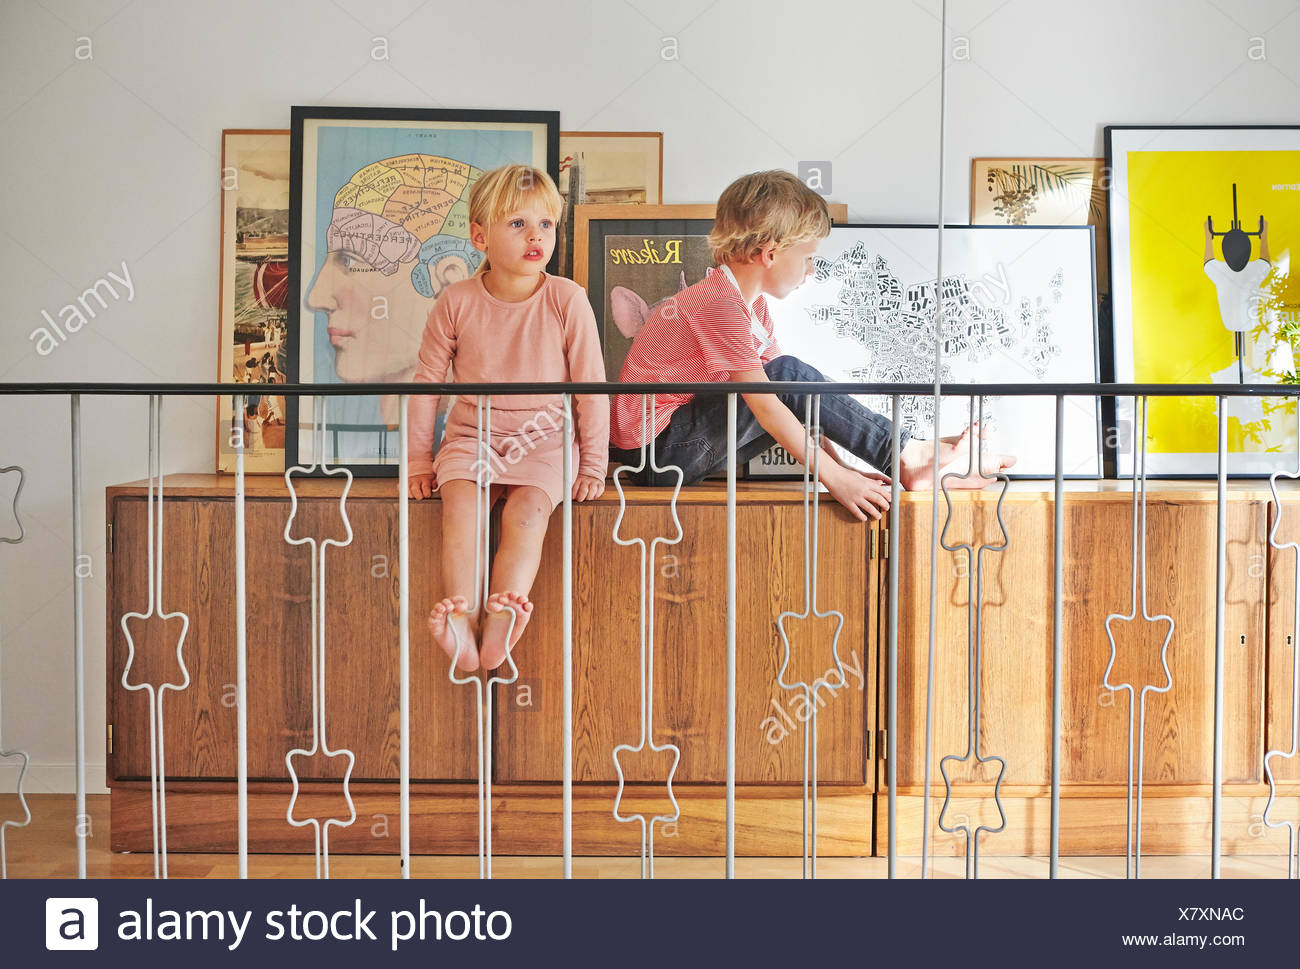 Girl and boy sitting on cupboard with pictures behind railing - Stock Image